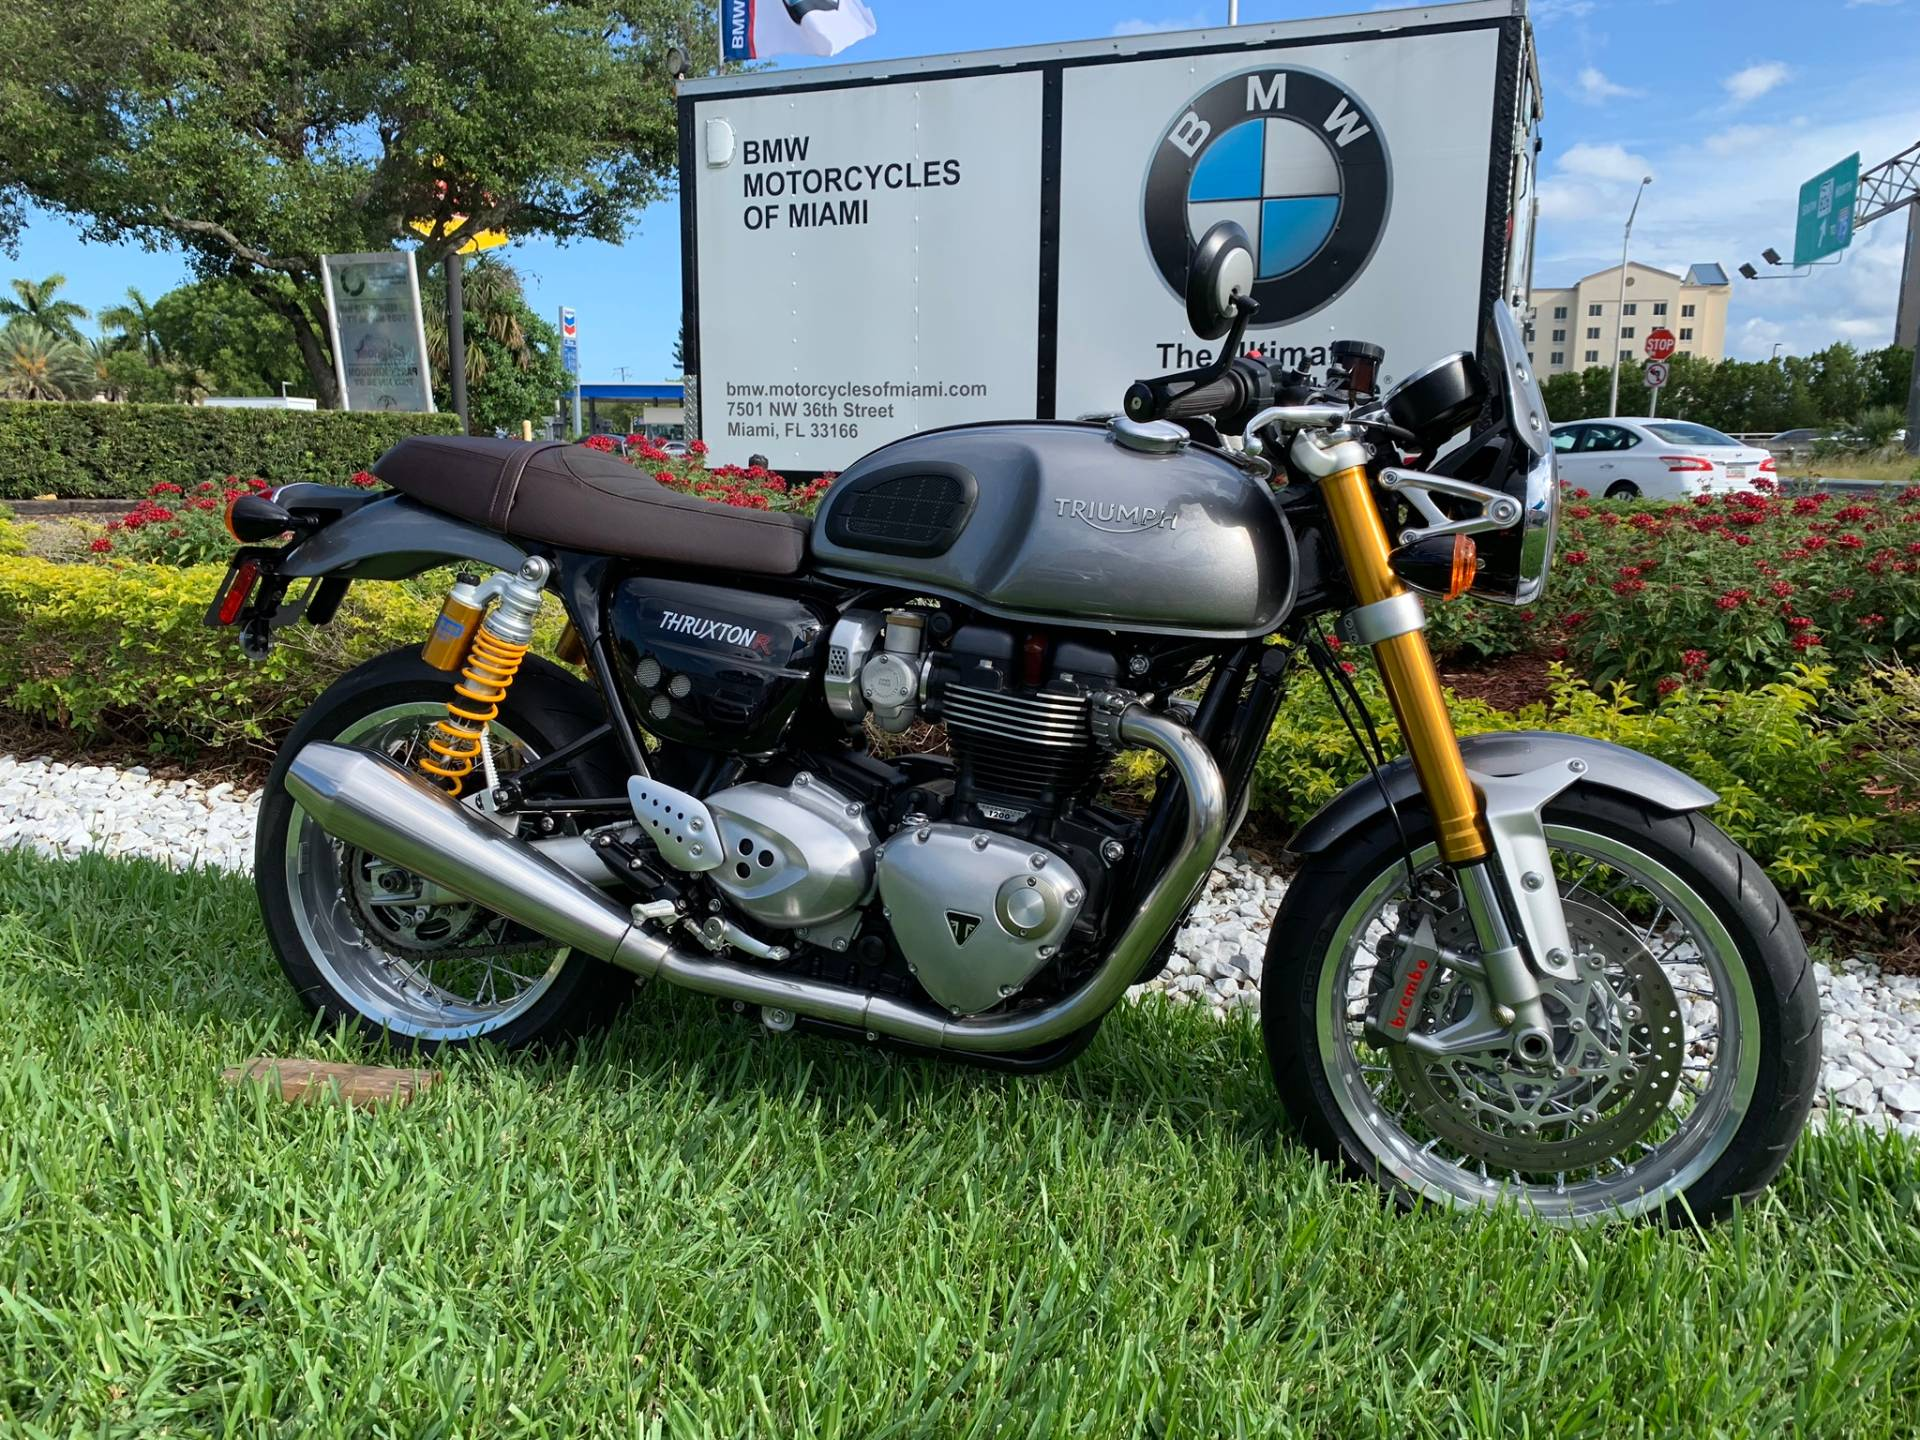 Used 2016 Triumph Thruxton 1200 R for sale,  2016 Triumph Thruxton 1200R for sale,  Triumph Thruxton1200R,  Used ThruxtonR, Cafe. Cruiser, BMW Motorcycles of Miami, Motorcycles of Miami, Motorcycles Miami, New Motorcycles, Used Motorcycles, pre-owned. #BMWMotorcyclesOfMiami #MotorcyclesOfMiami #Moto - Photo 23